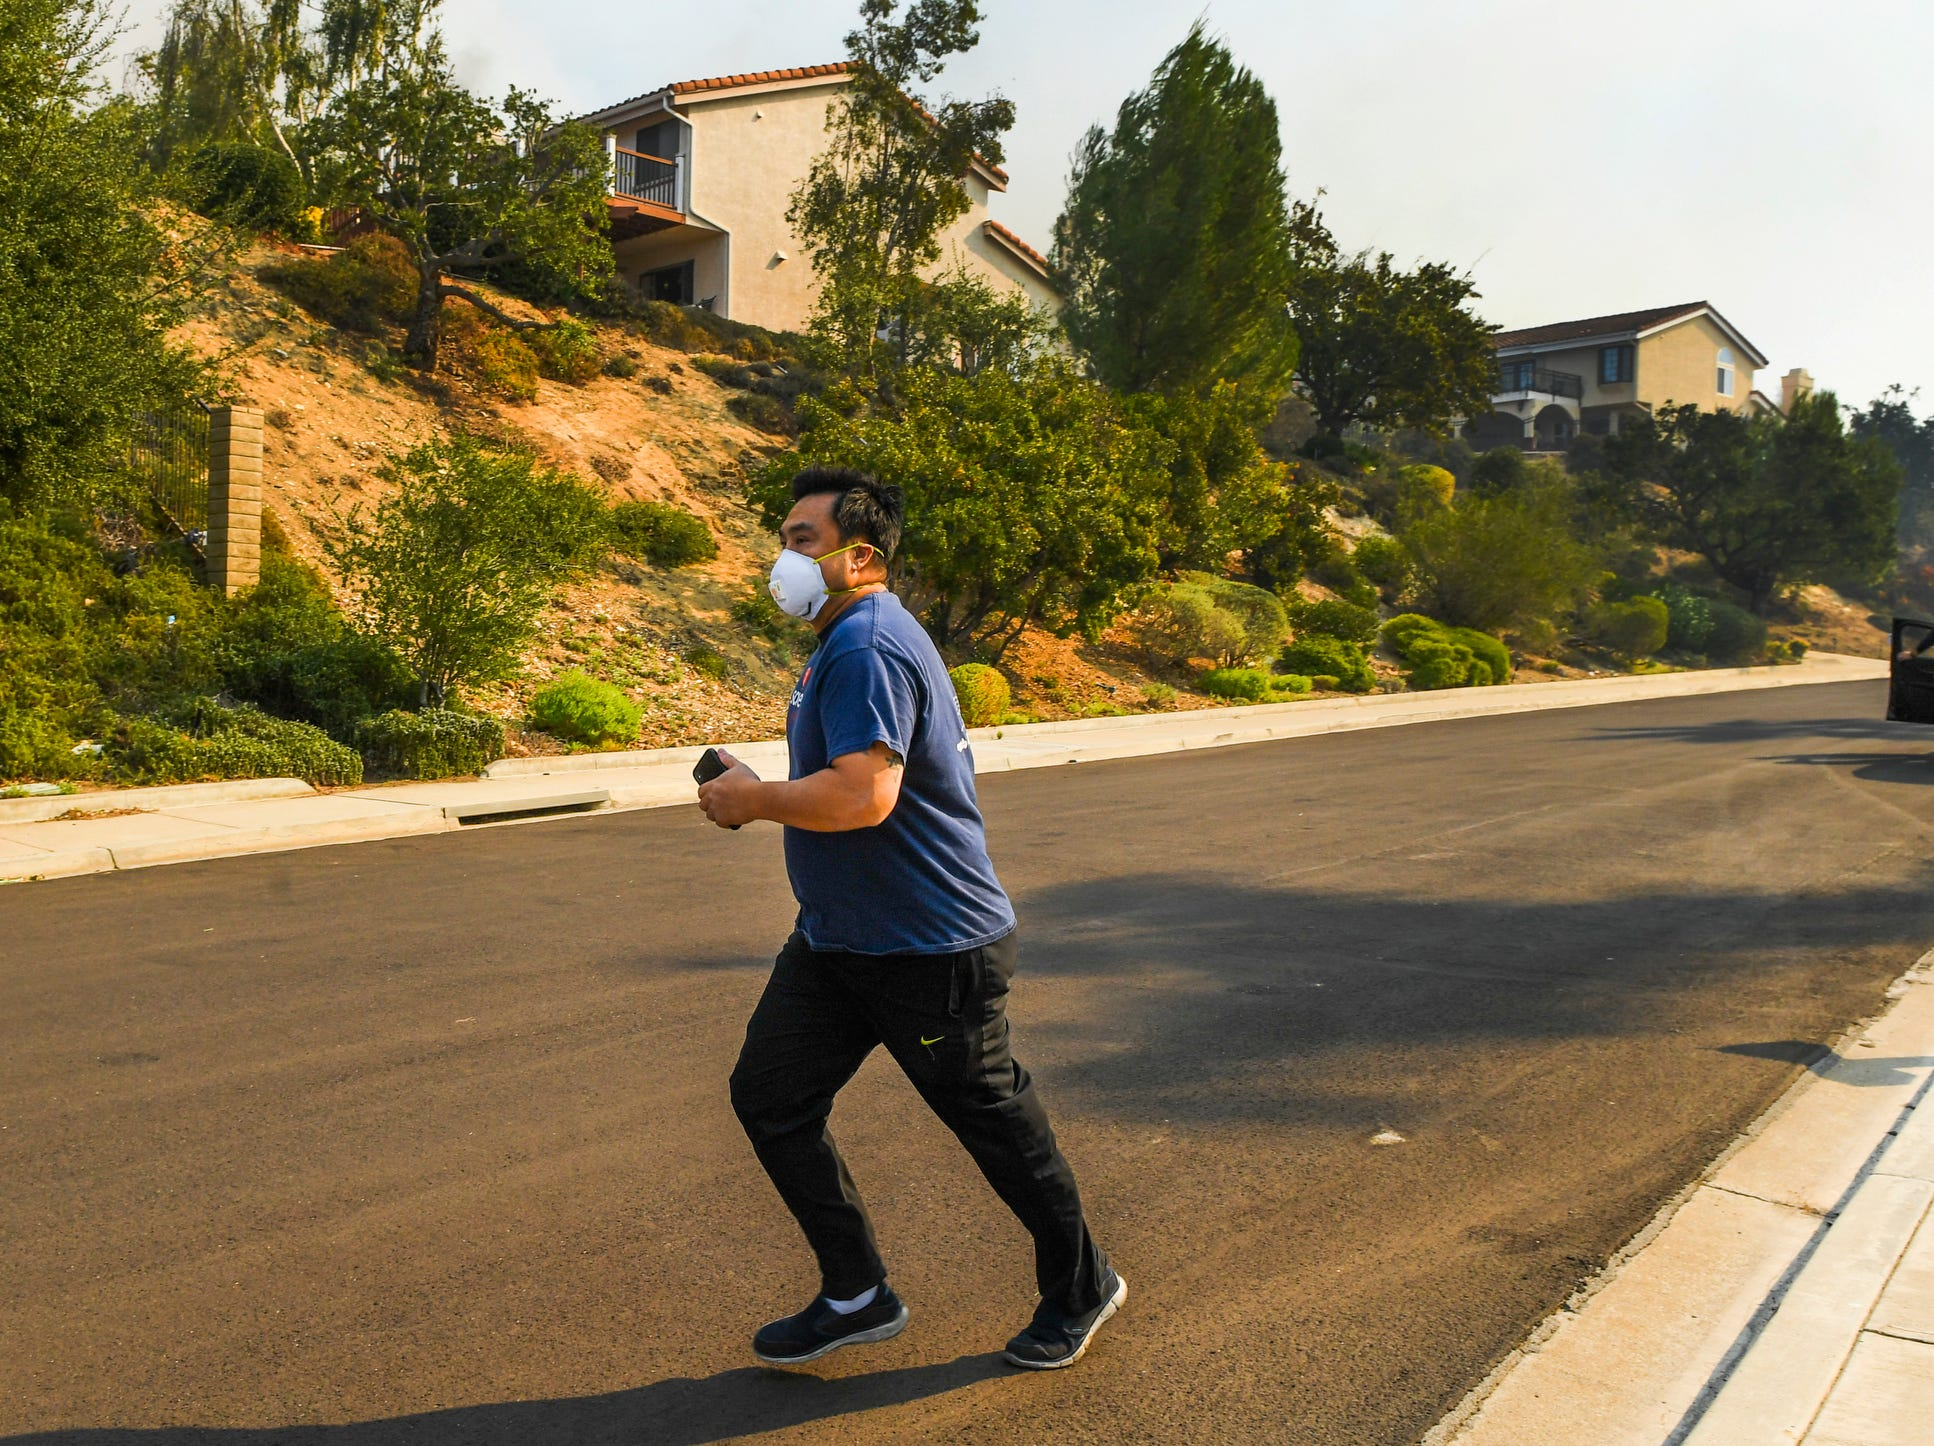 A resident wearing a breathing mask runs down Shadow Oaks Place in Thousand Oaks, Calif., as smoke from flames in a hill above the homes fills the neighborhood. Some residents decided to leave their homes as firefighters kept a watchful eye on the fire.